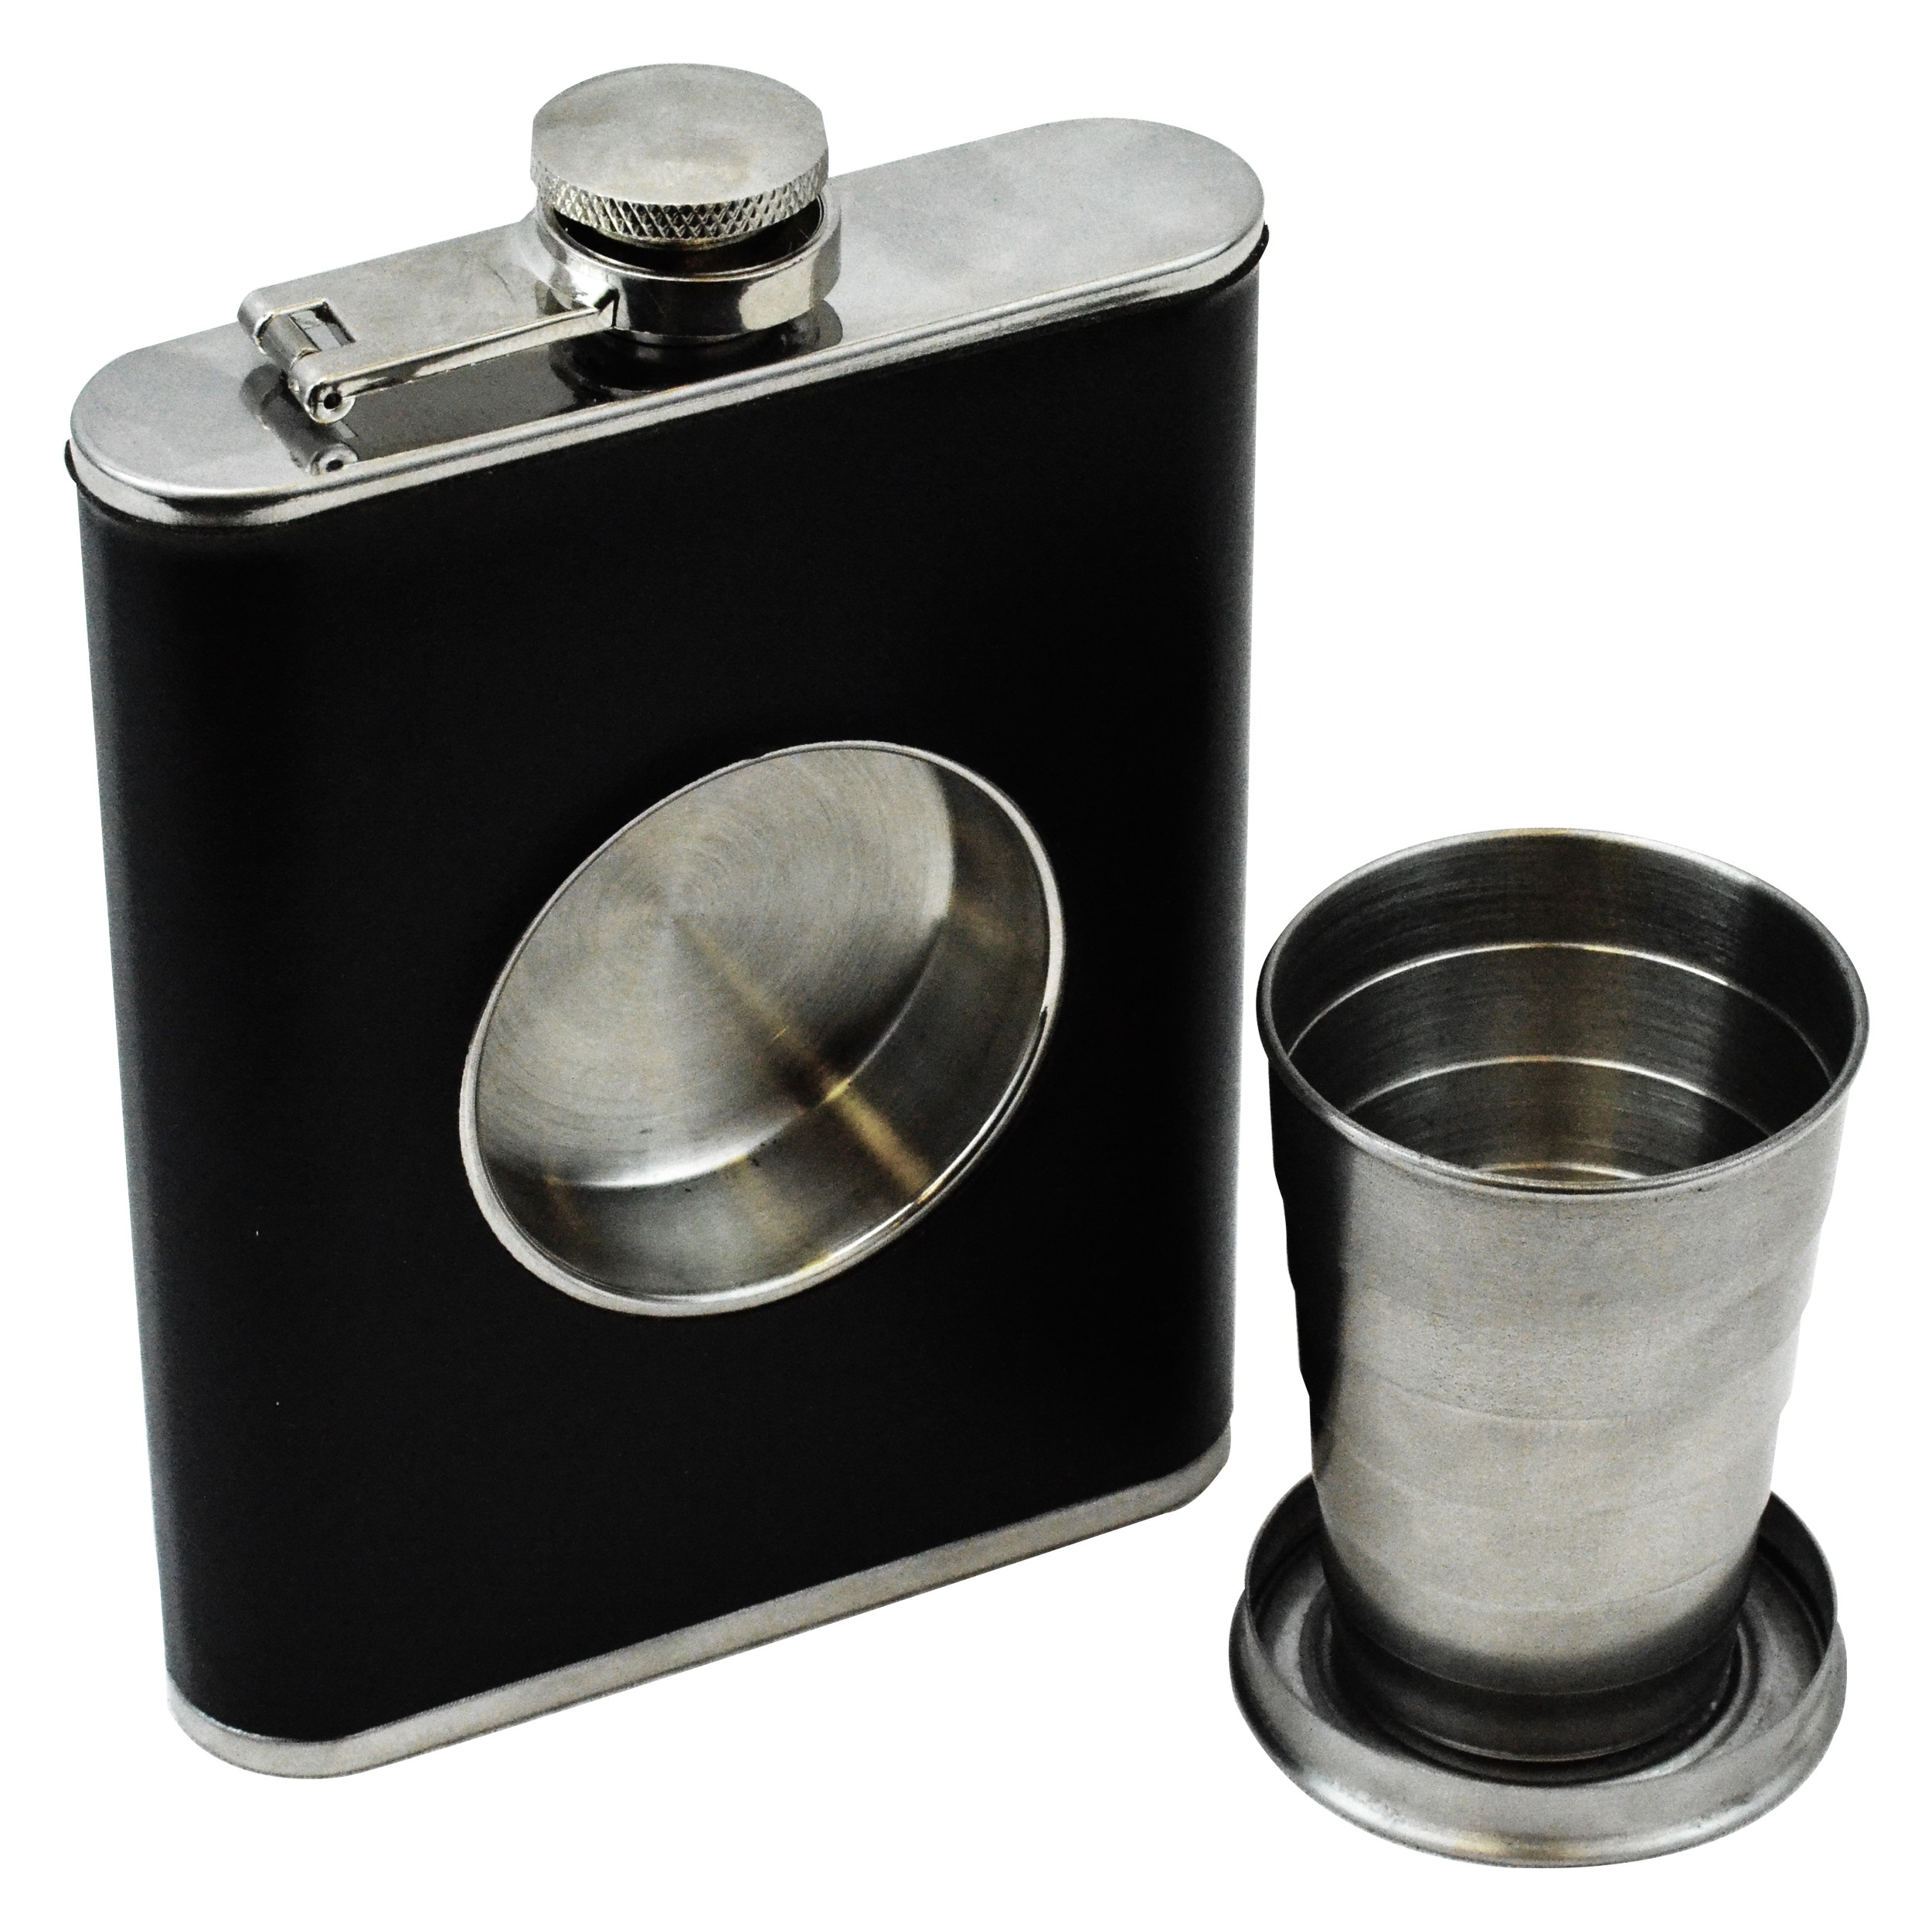 Shot Flask - 8oz Hip Flask With Built In Collapsible Shot Glass